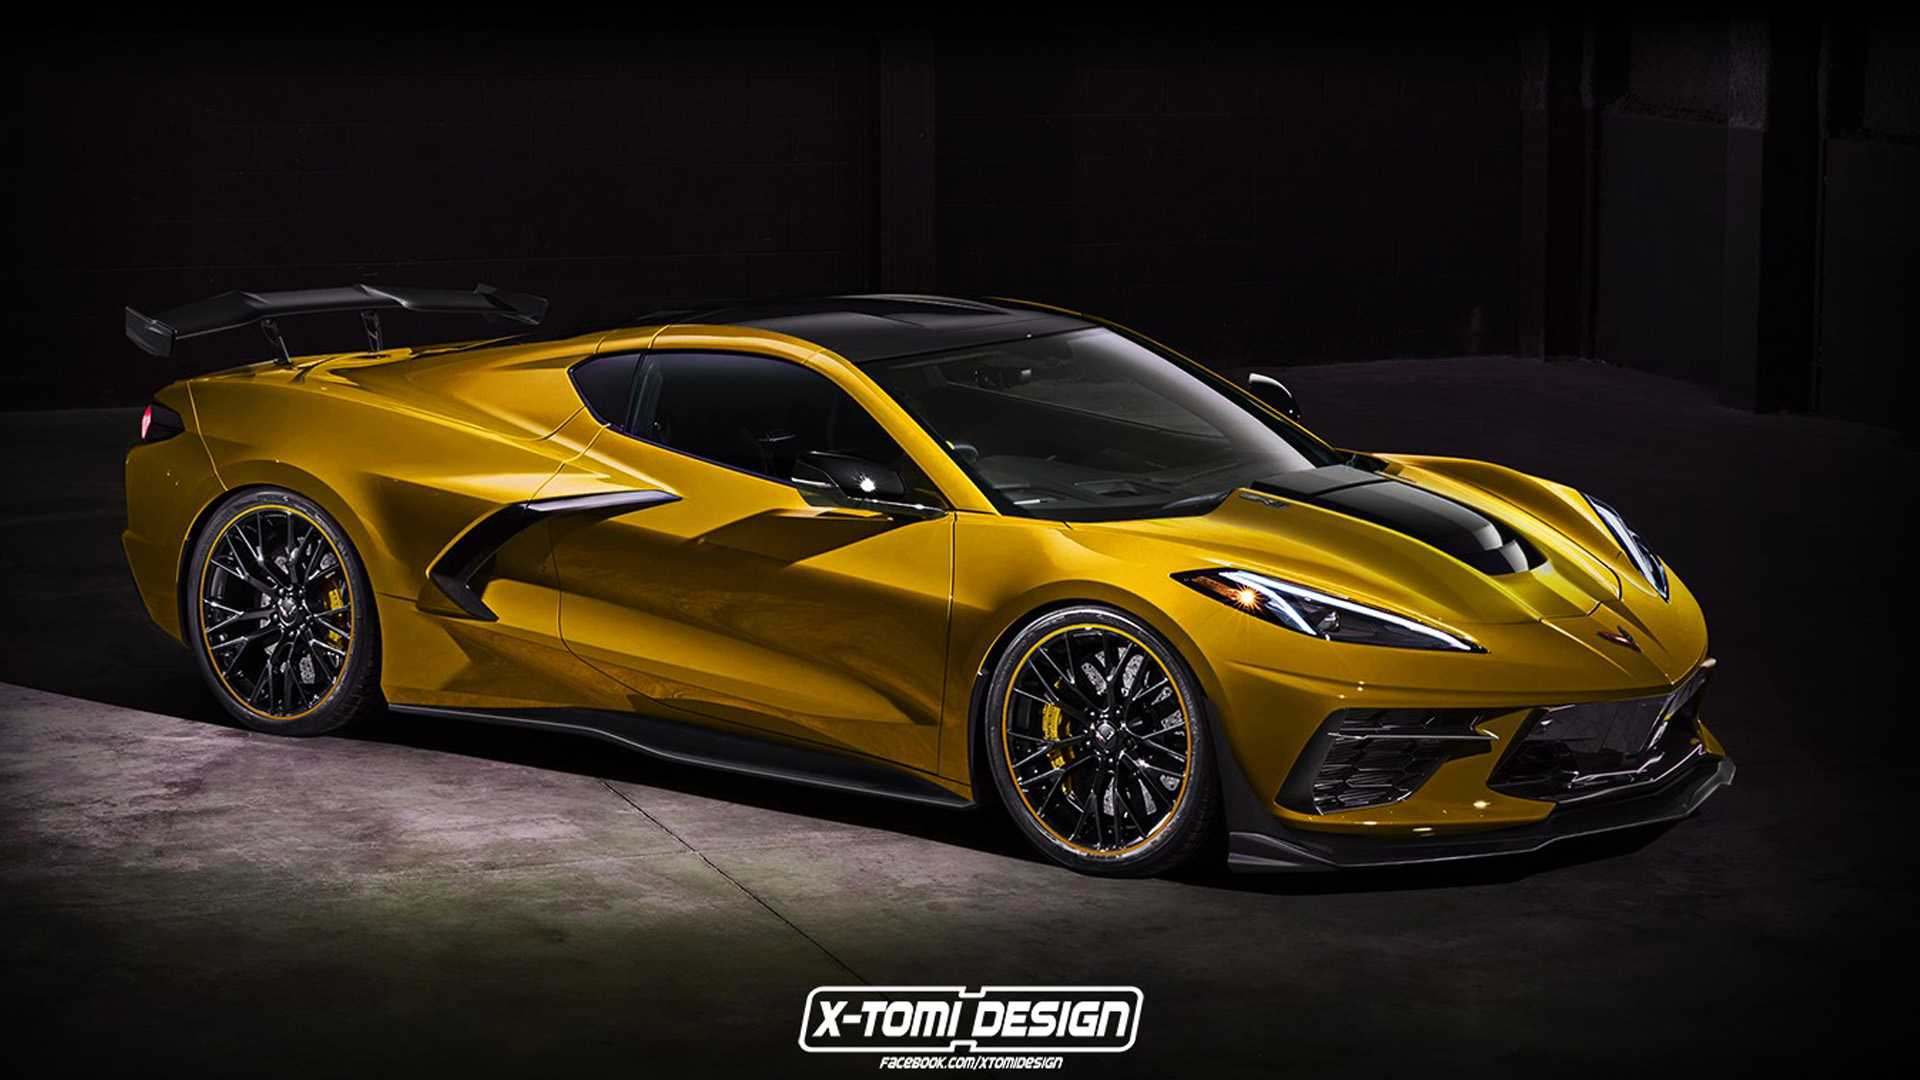 800-Hp 2022 Chevy Corvette Z06 Might Actually Be The Zr1: Report 2022 Chevrolet Corvette Zr1 Pictures, Price, Performance